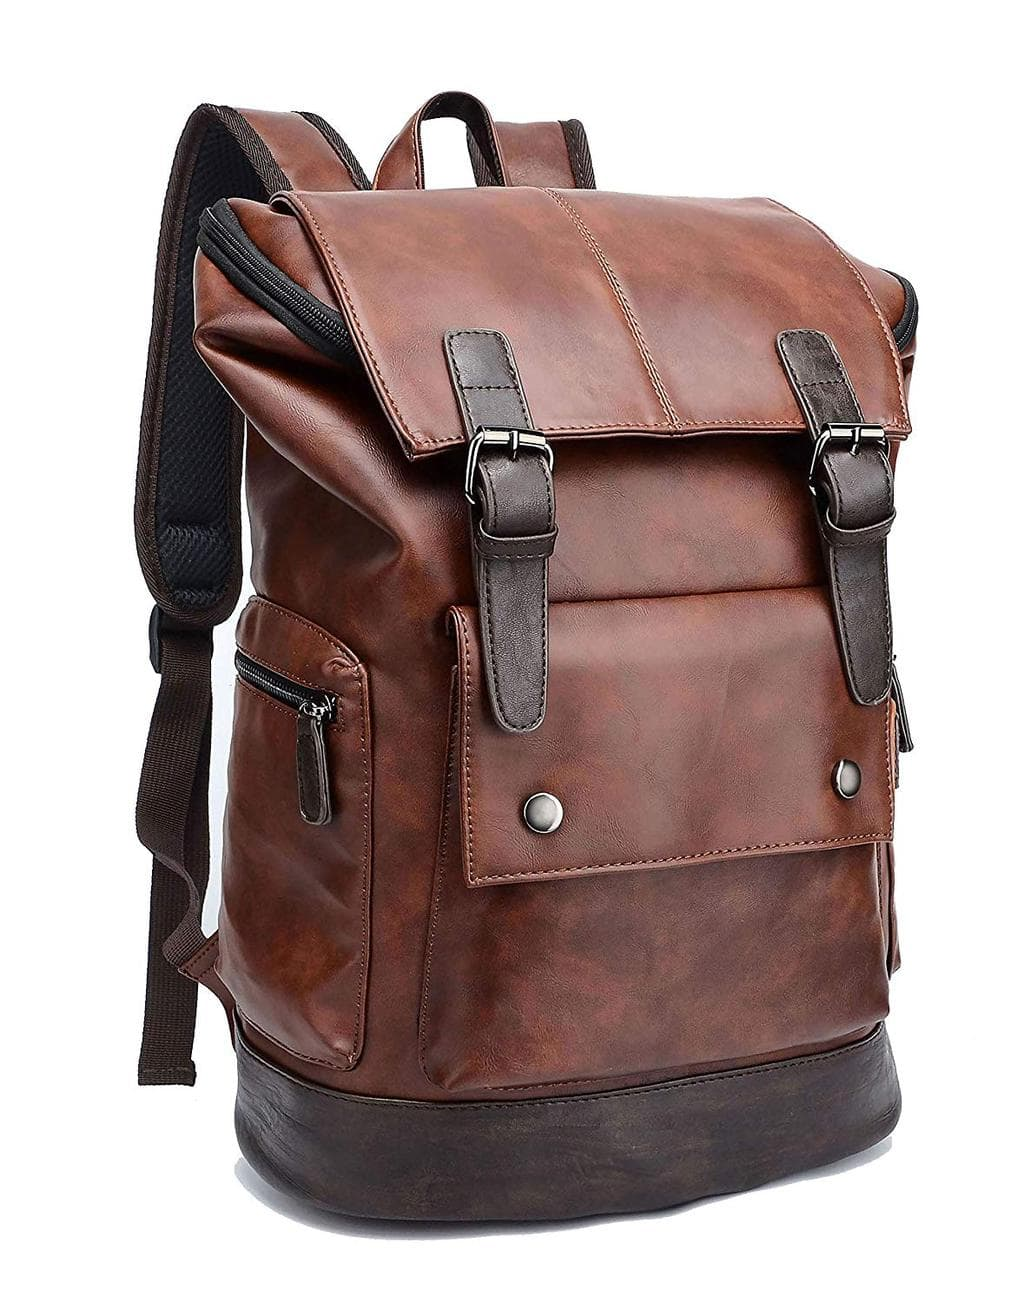 37 Best Travel Accessories for Men and Women 3